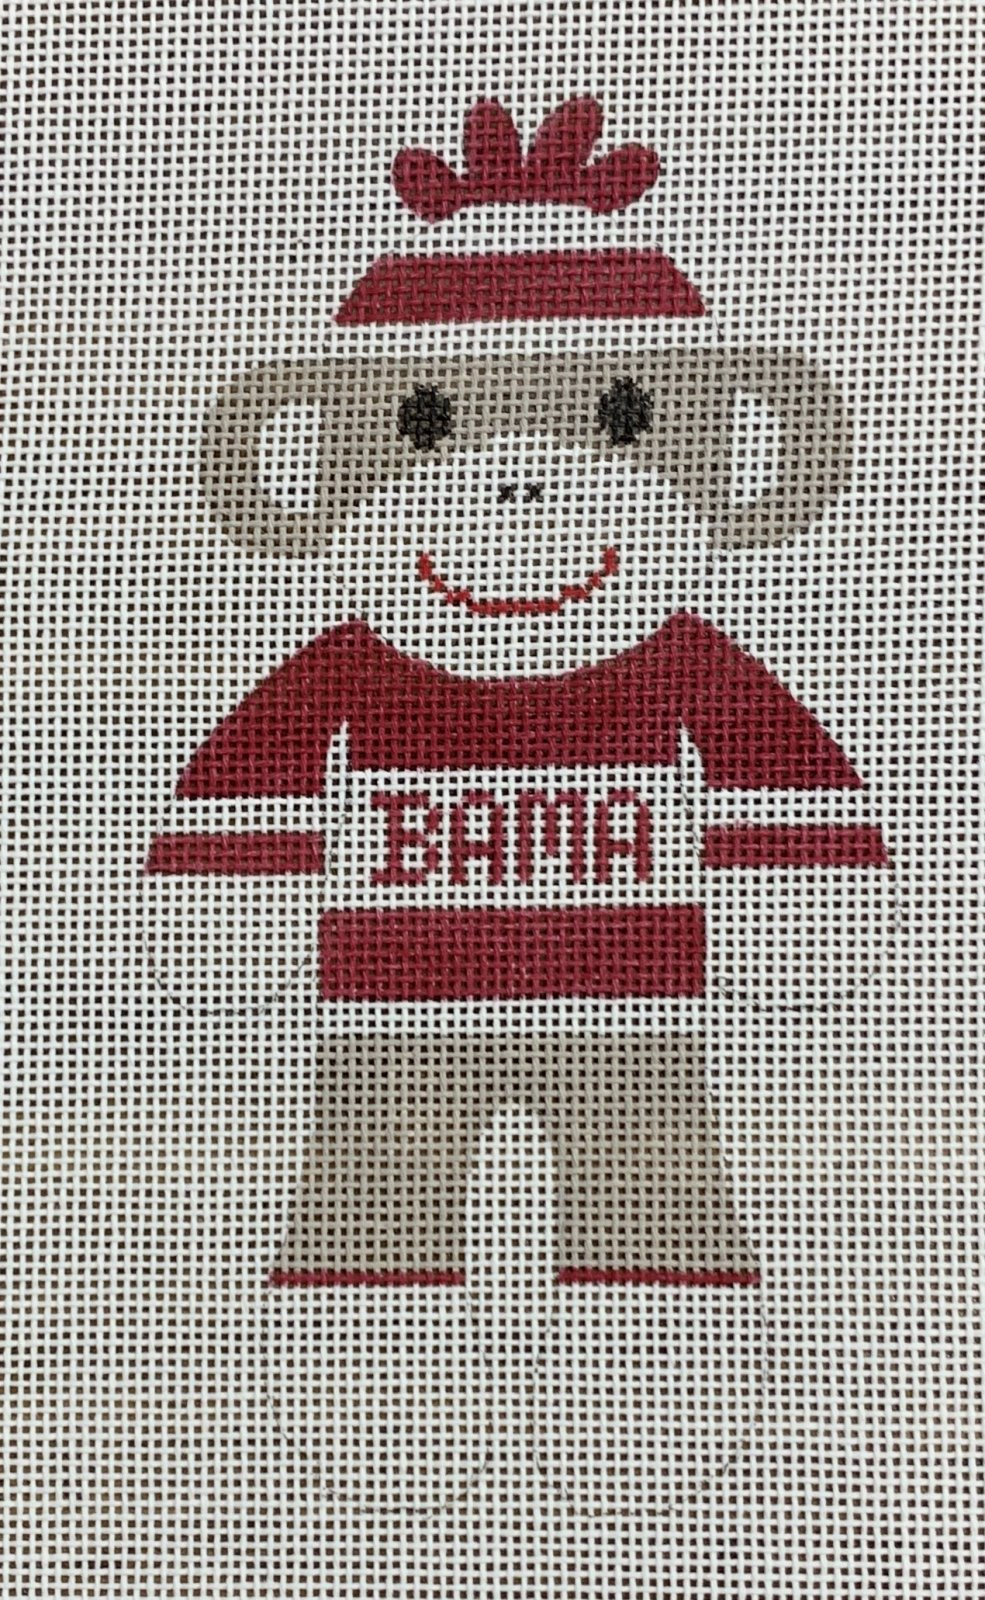 Sock Monkey - Bama